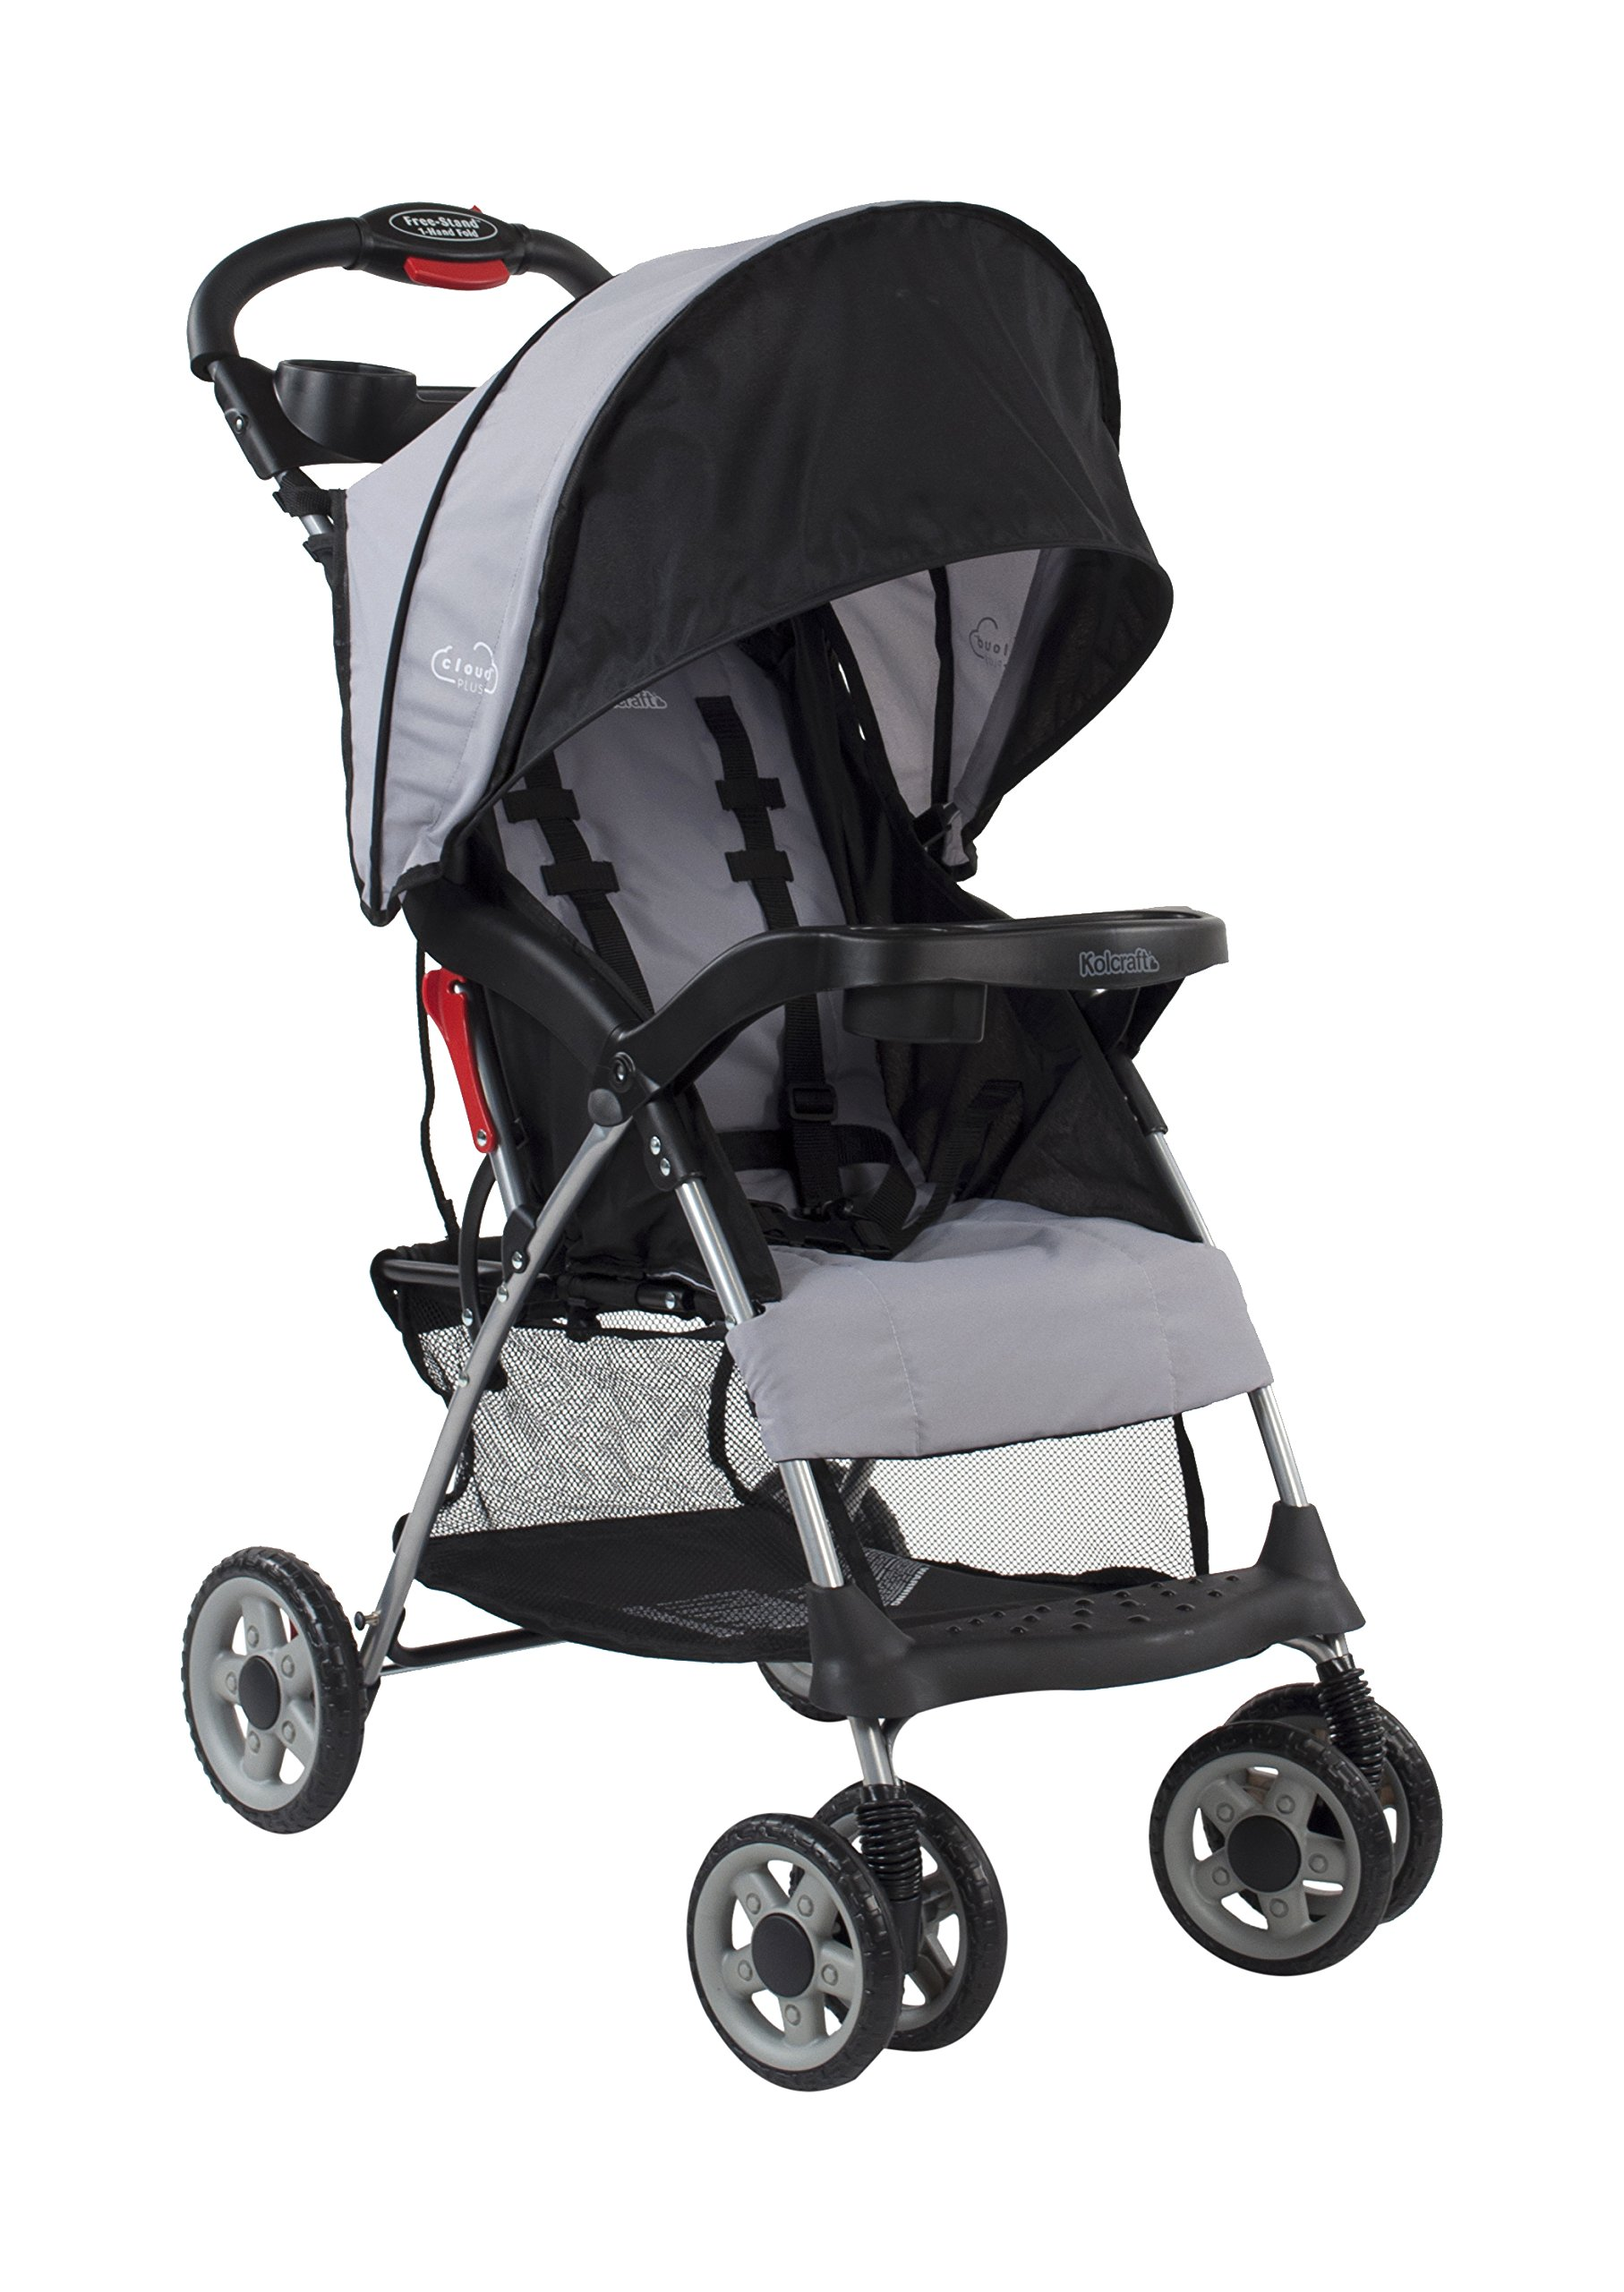 Kolcraft Cloud Plus Lightweight Stroller with 5 Point Safety System and Multi Positon Reclining